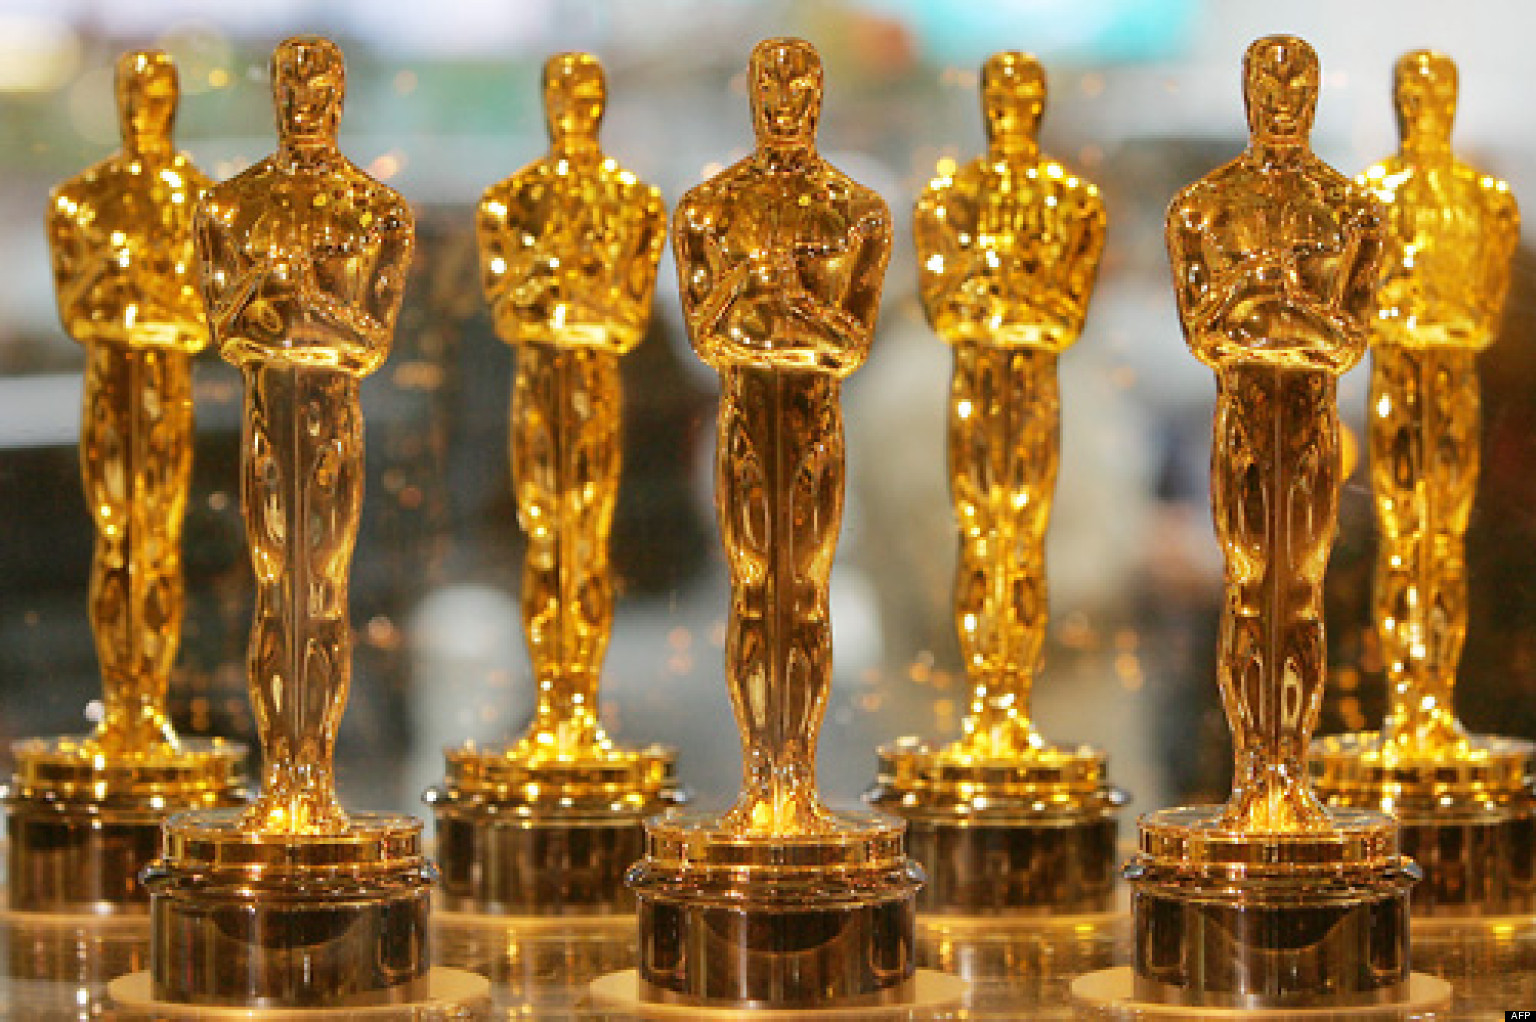 Metrics Show 'Vast Swaths' of People Turn Off the Oscars as Stars Started Discussing Politics